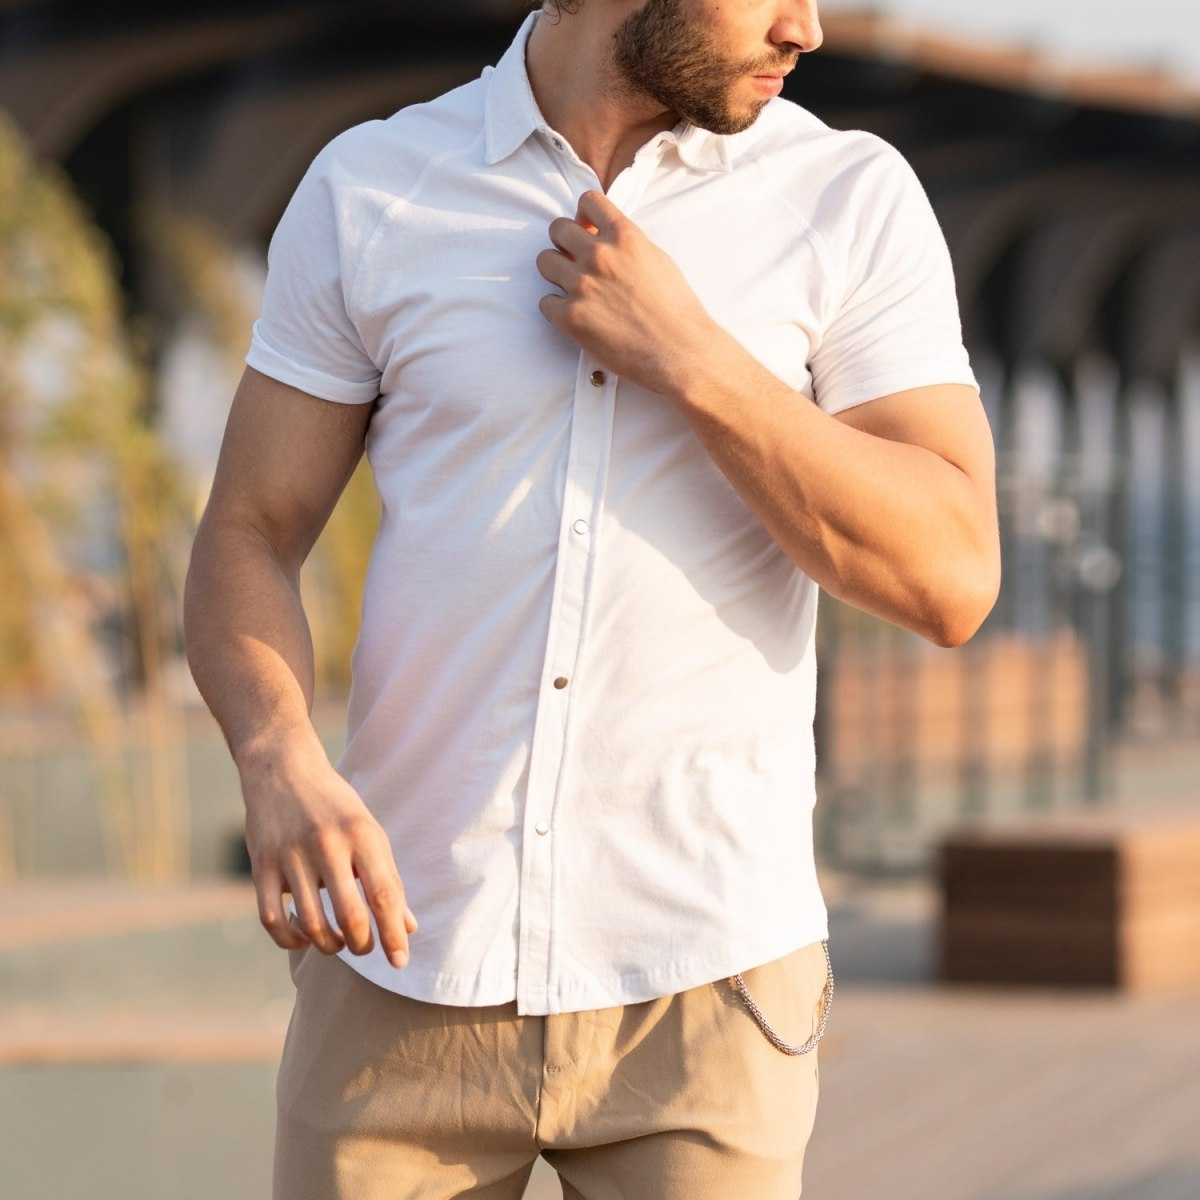 Men's Short Sleeve New Style Shirt In White Mv Premium Brand - 1